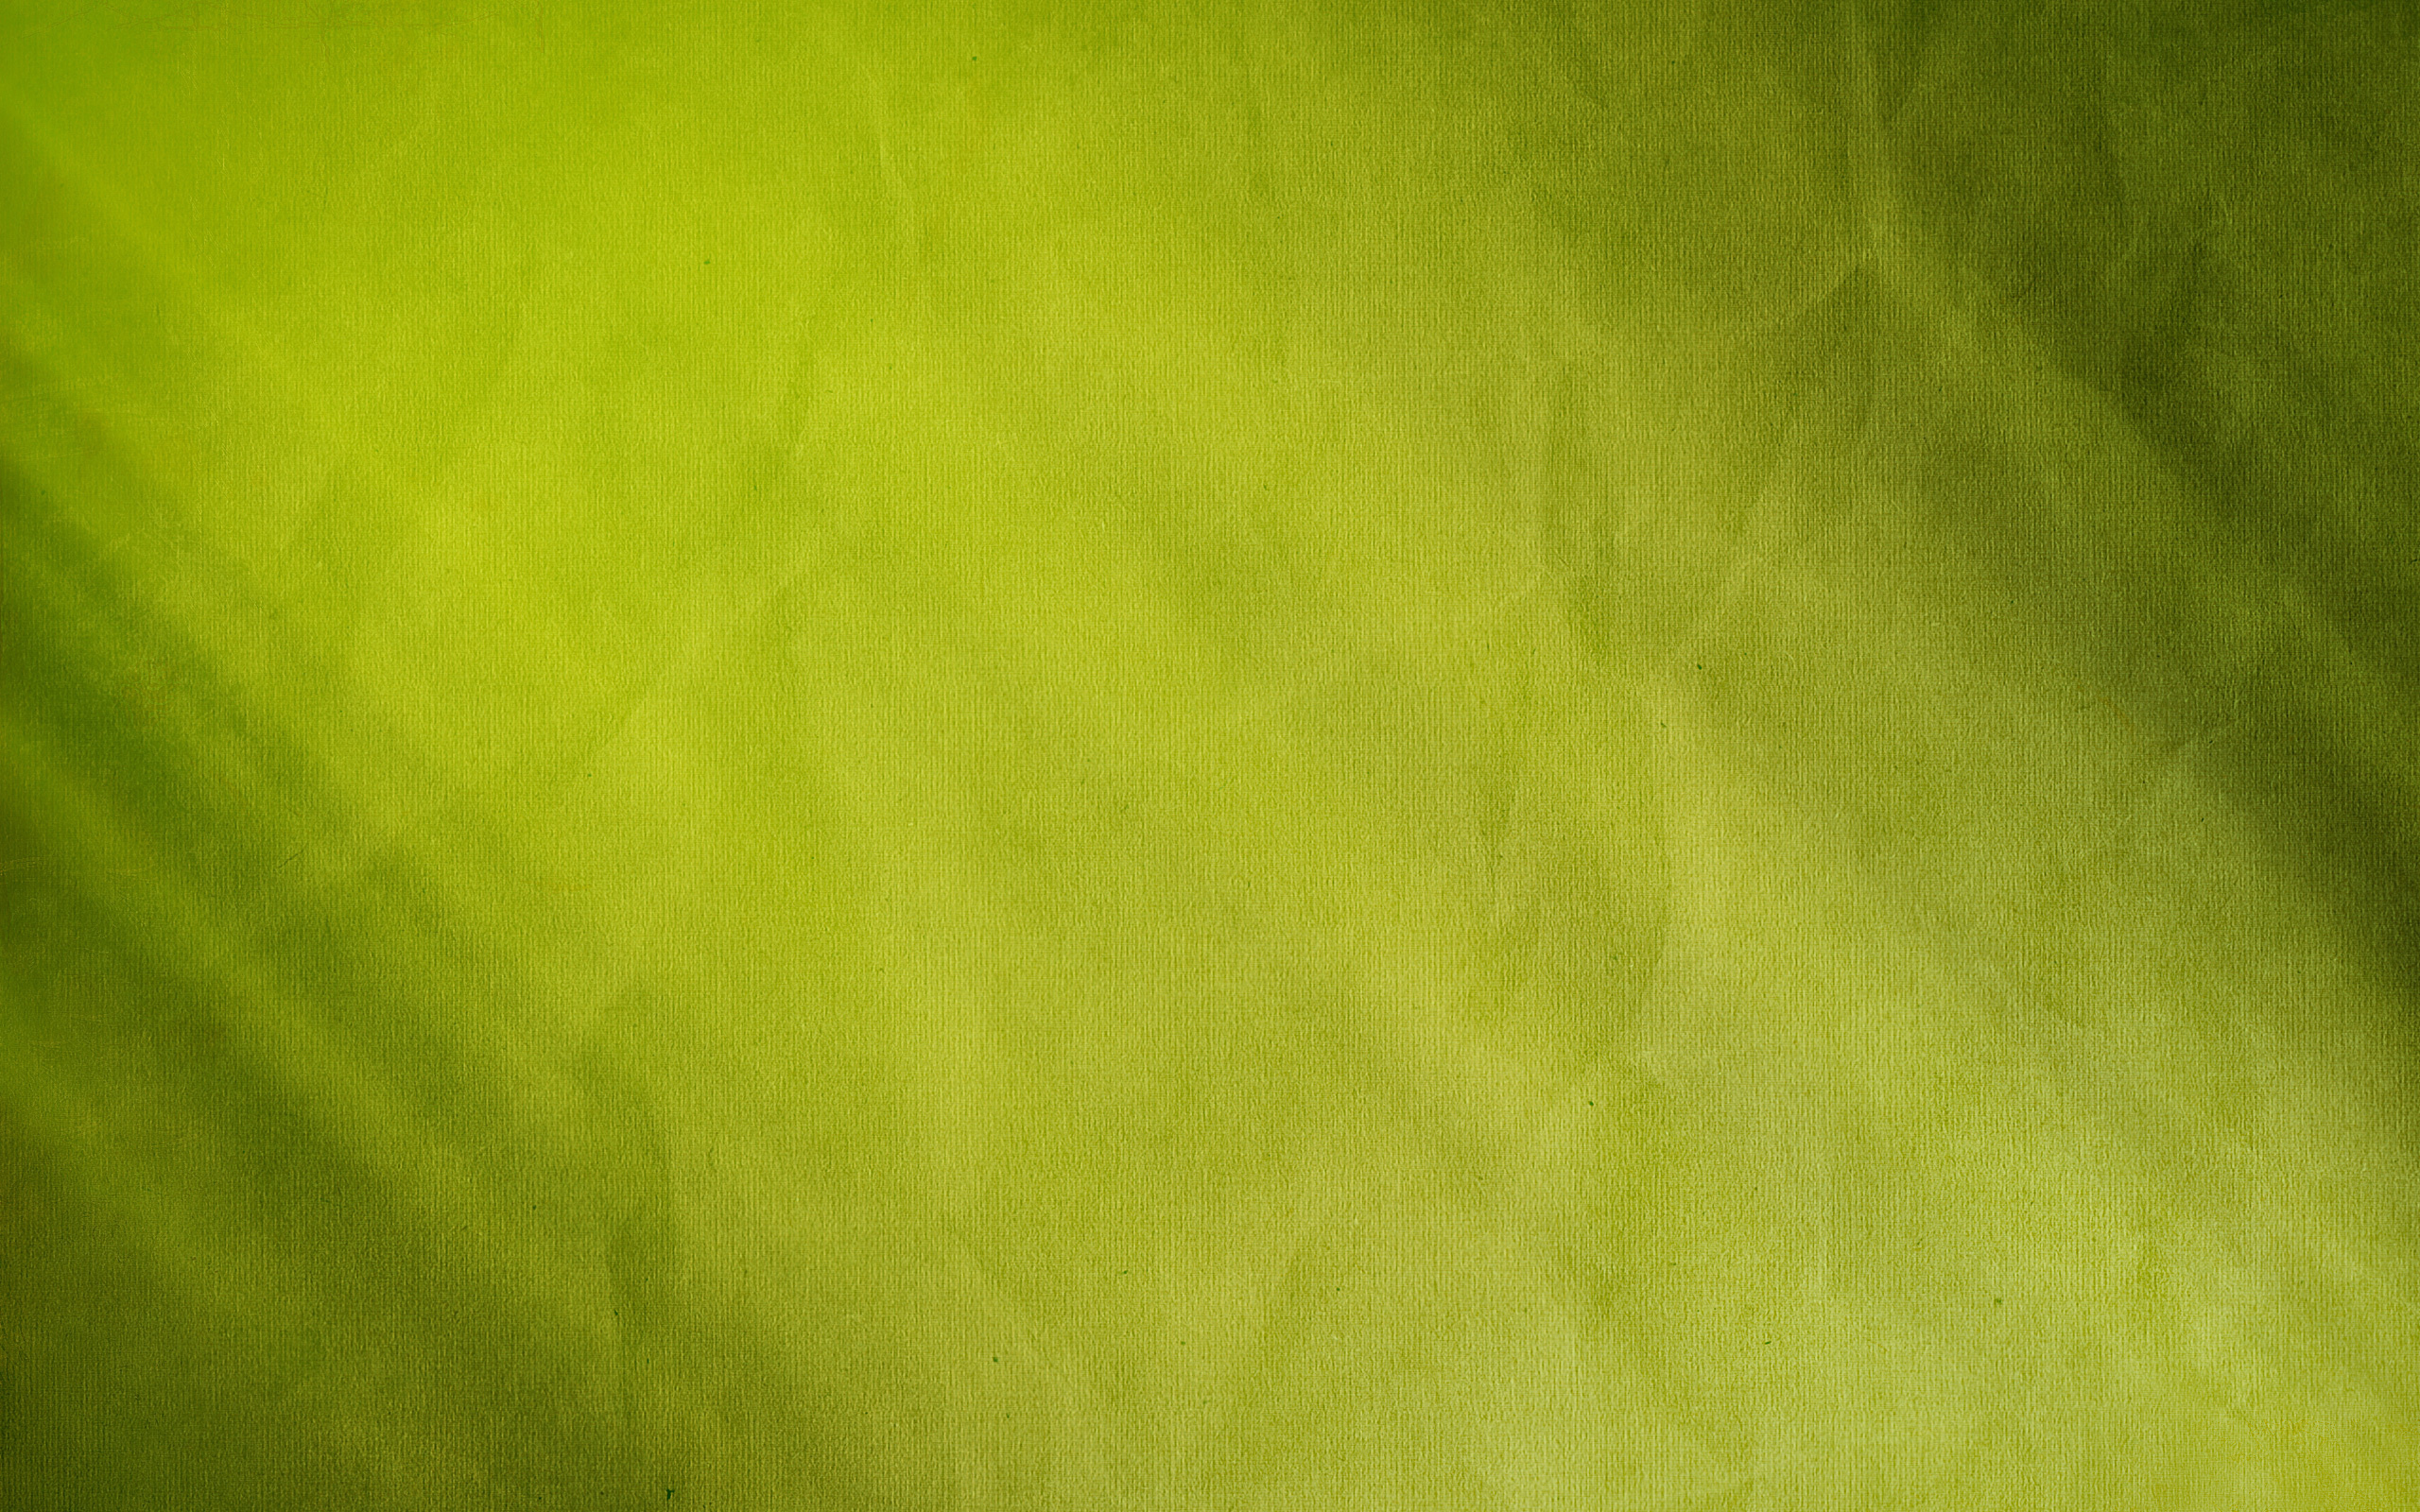 fabric cloth, texture cloth, cloth texture background, download photo